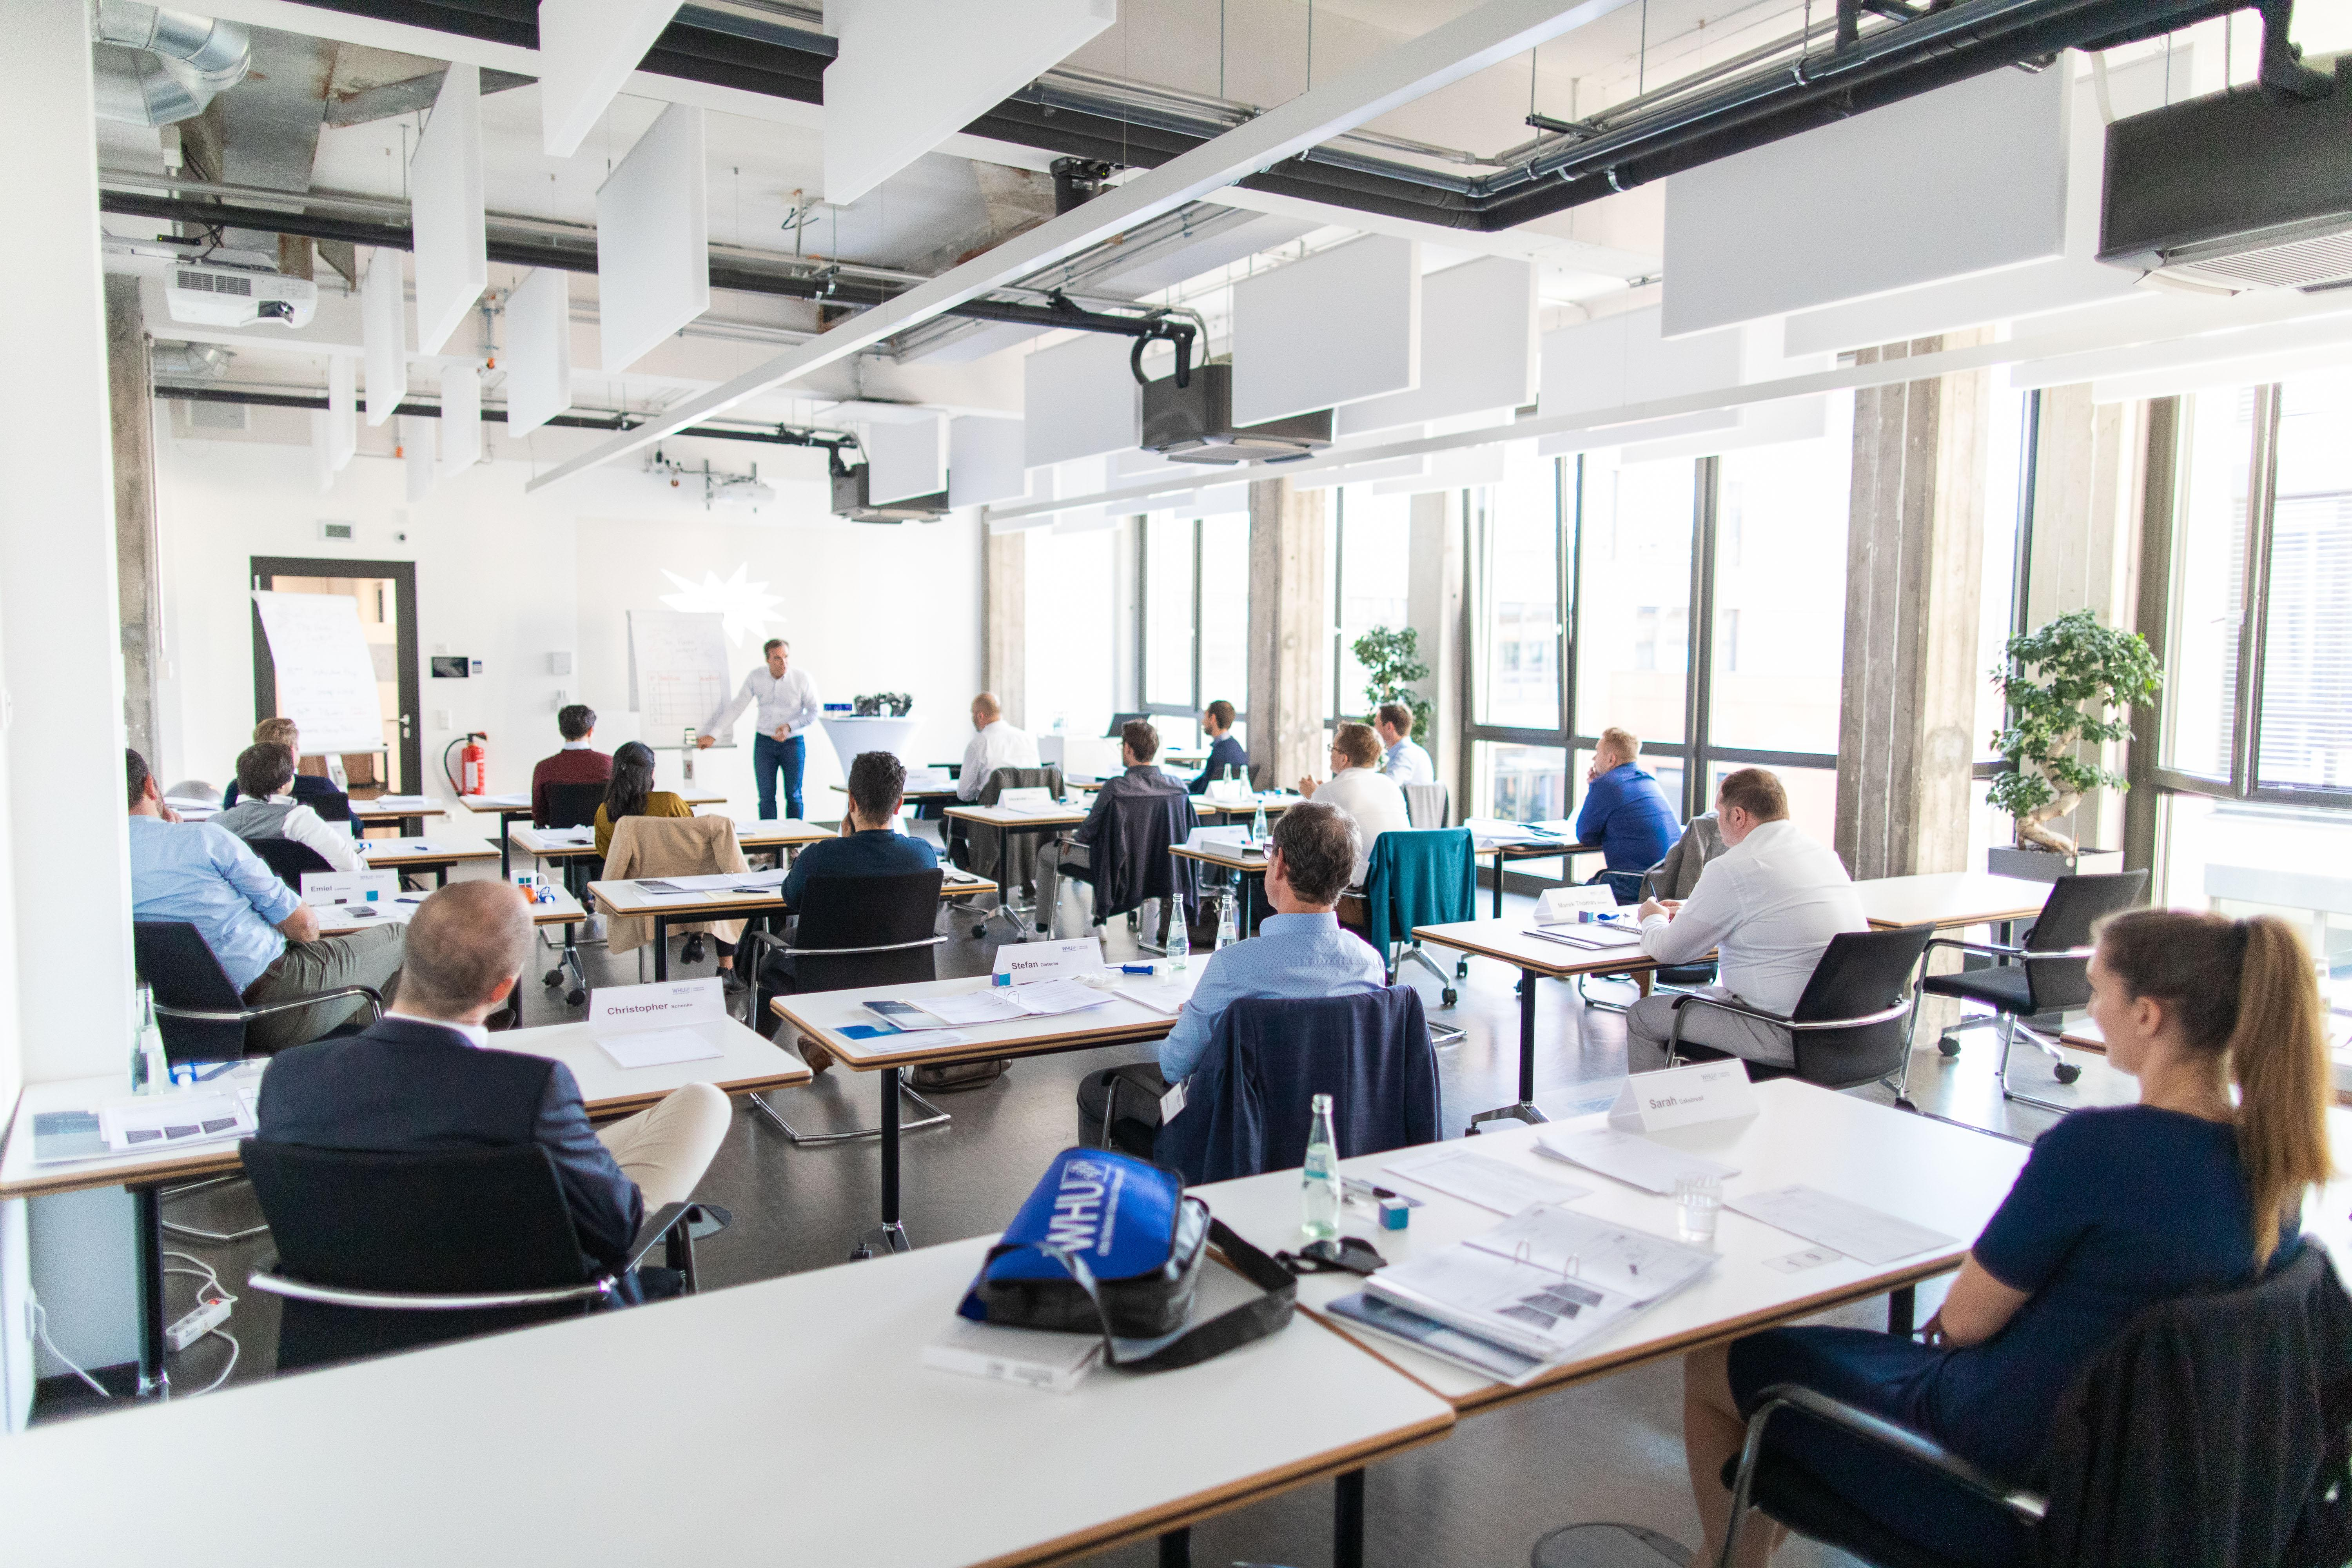 Digital transformation: Luther and WHU business school launch interdisciplinary continuing education for lawyers